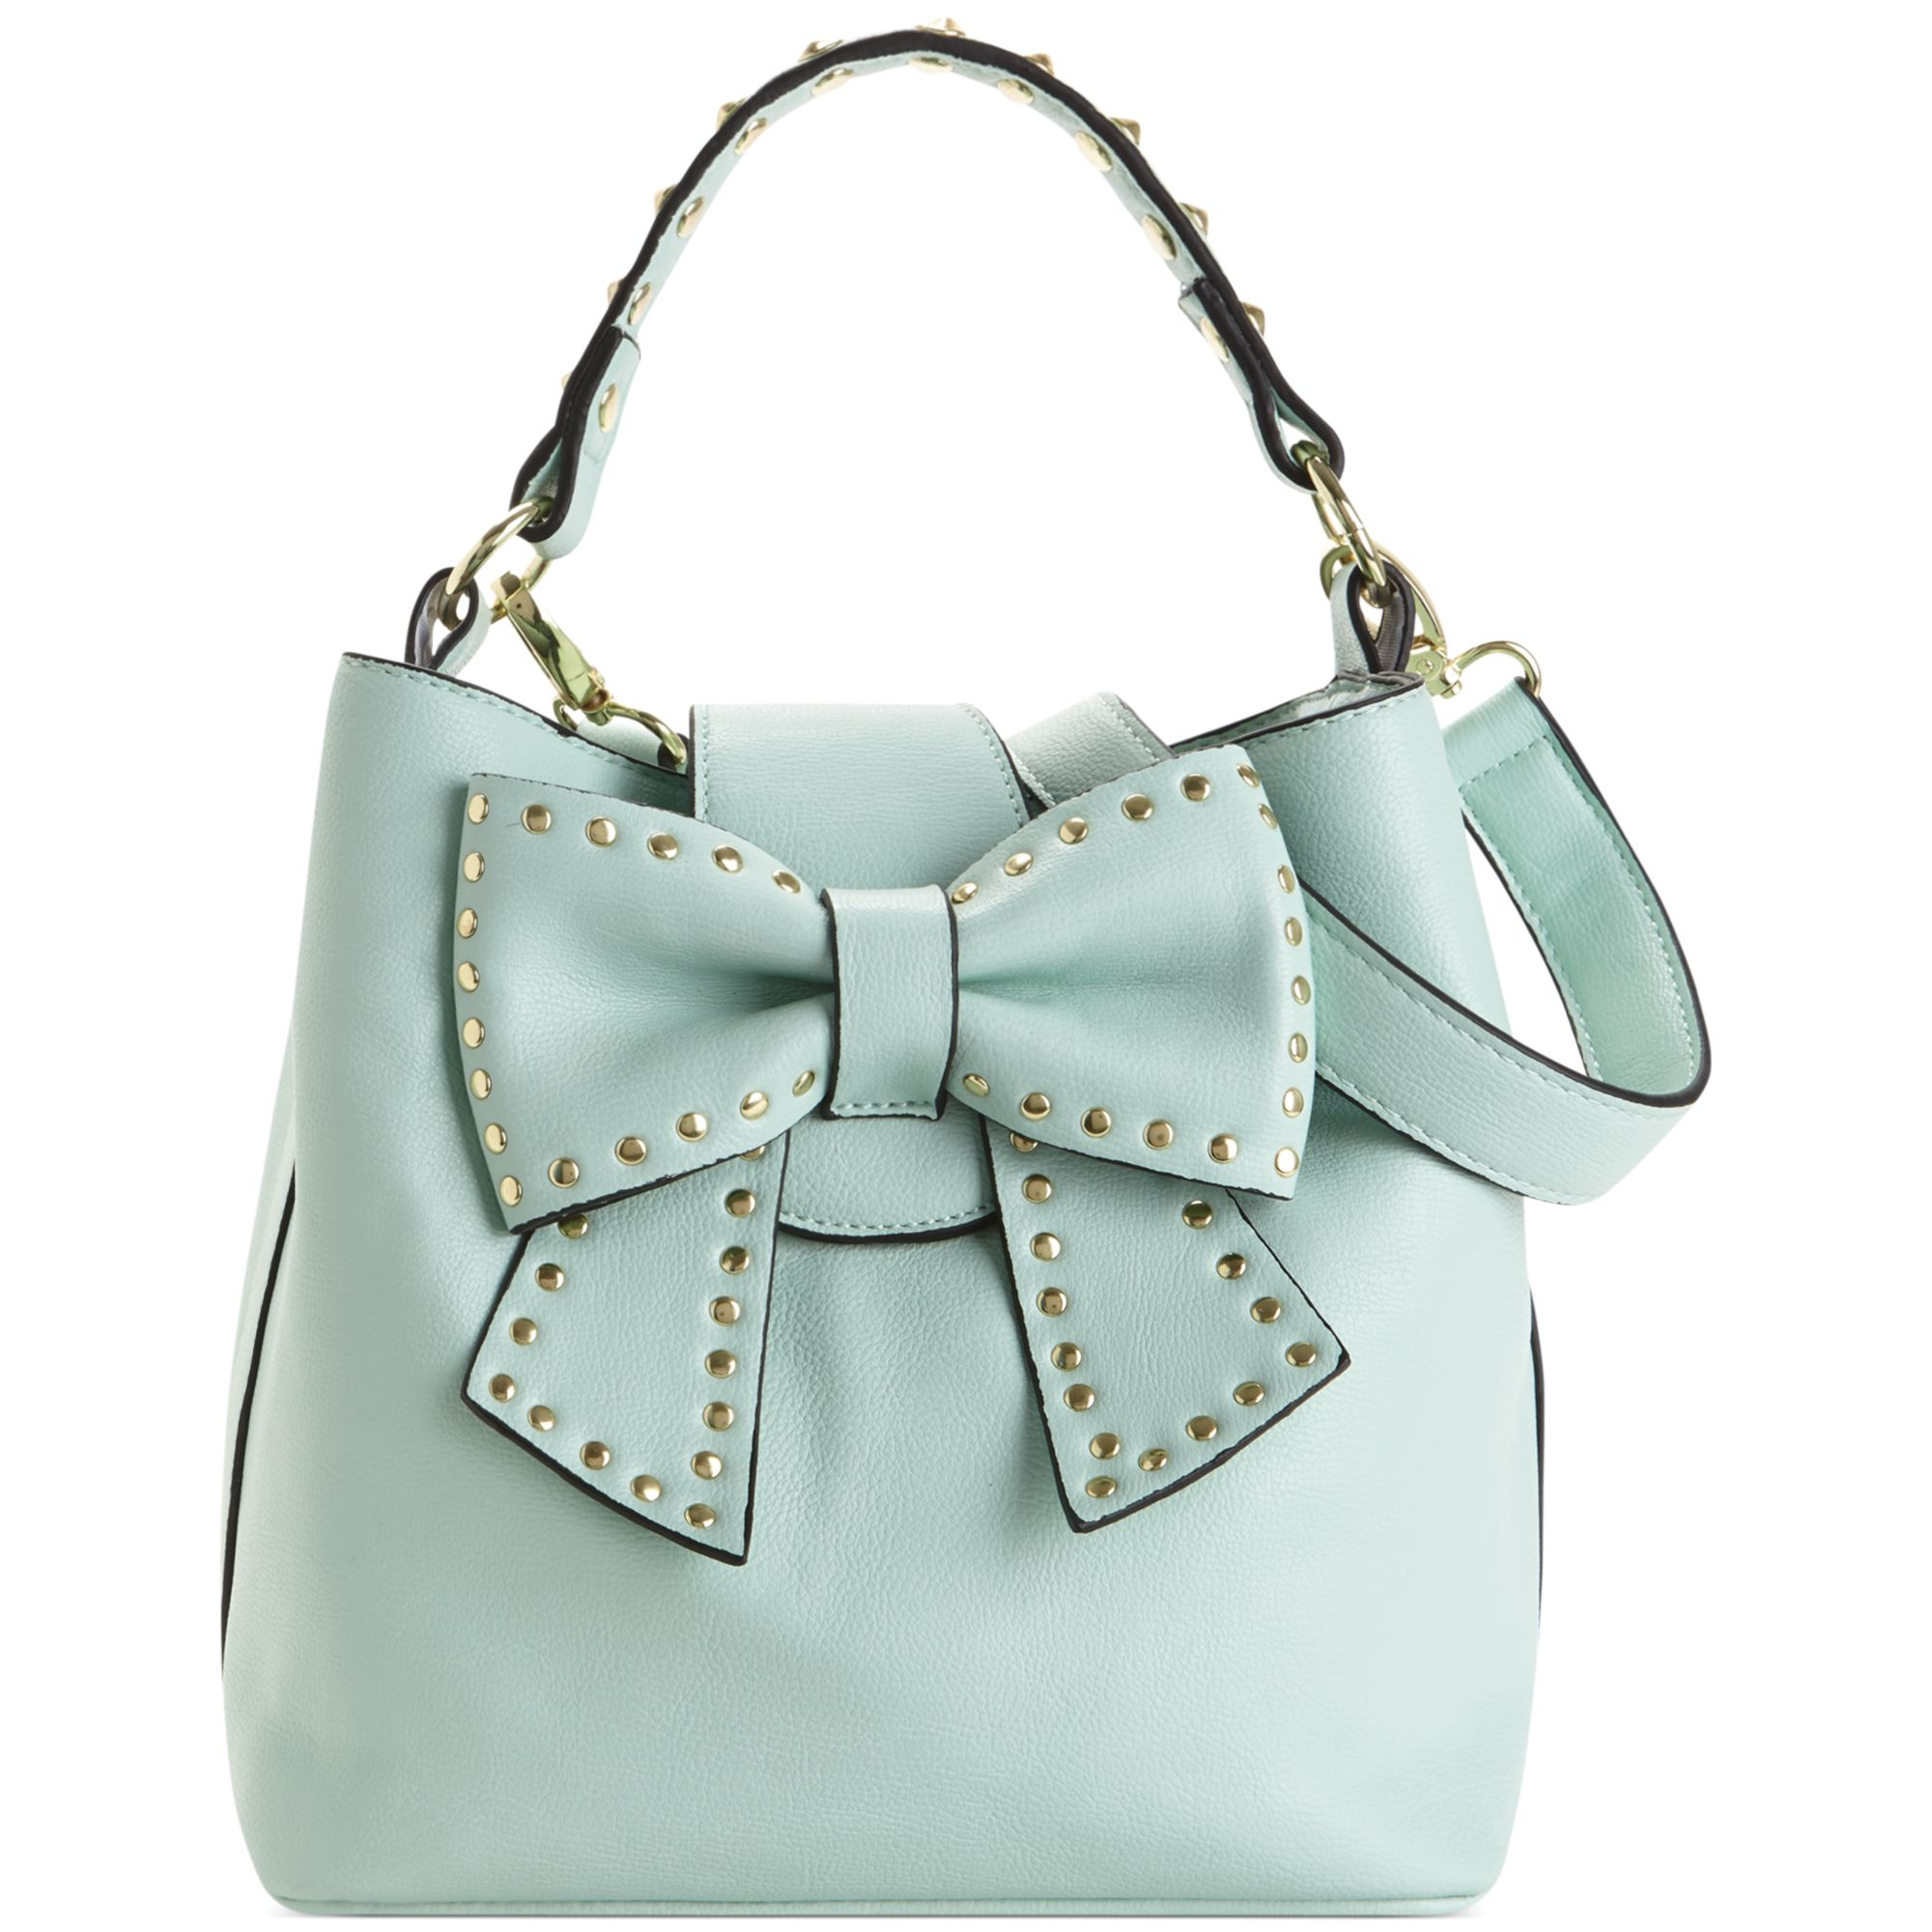 Betsey johnson Hopeless Romantic Bucket Bag in Green